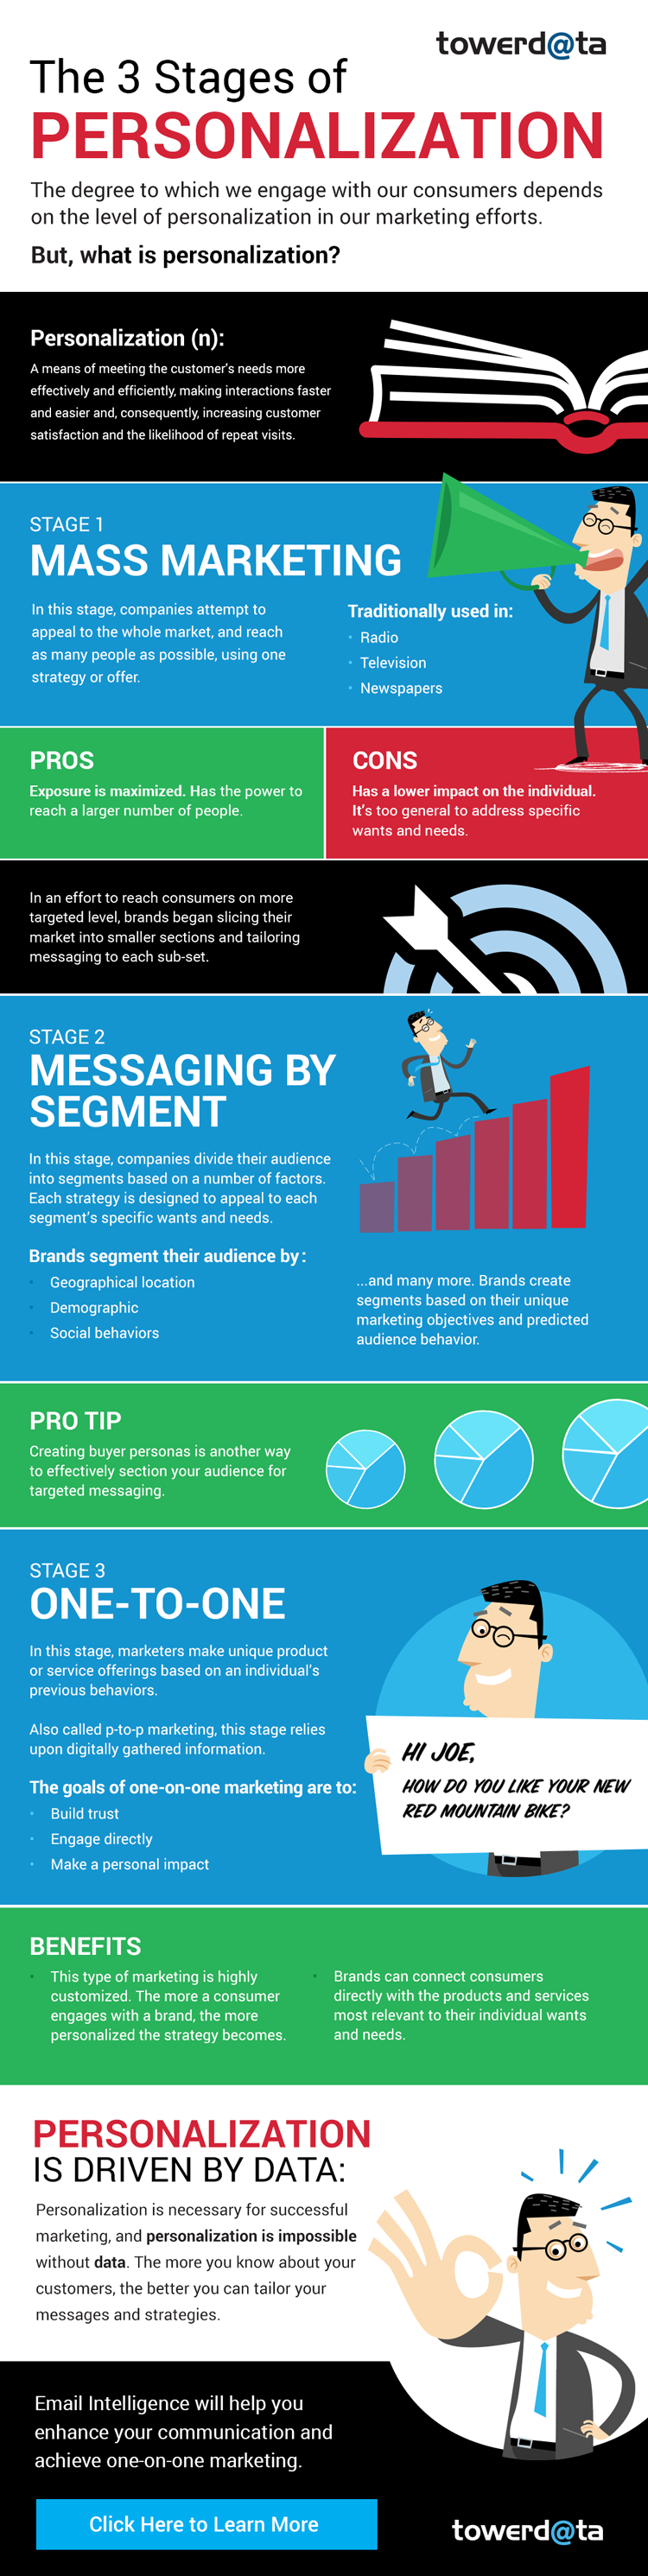 3 stages of personalization